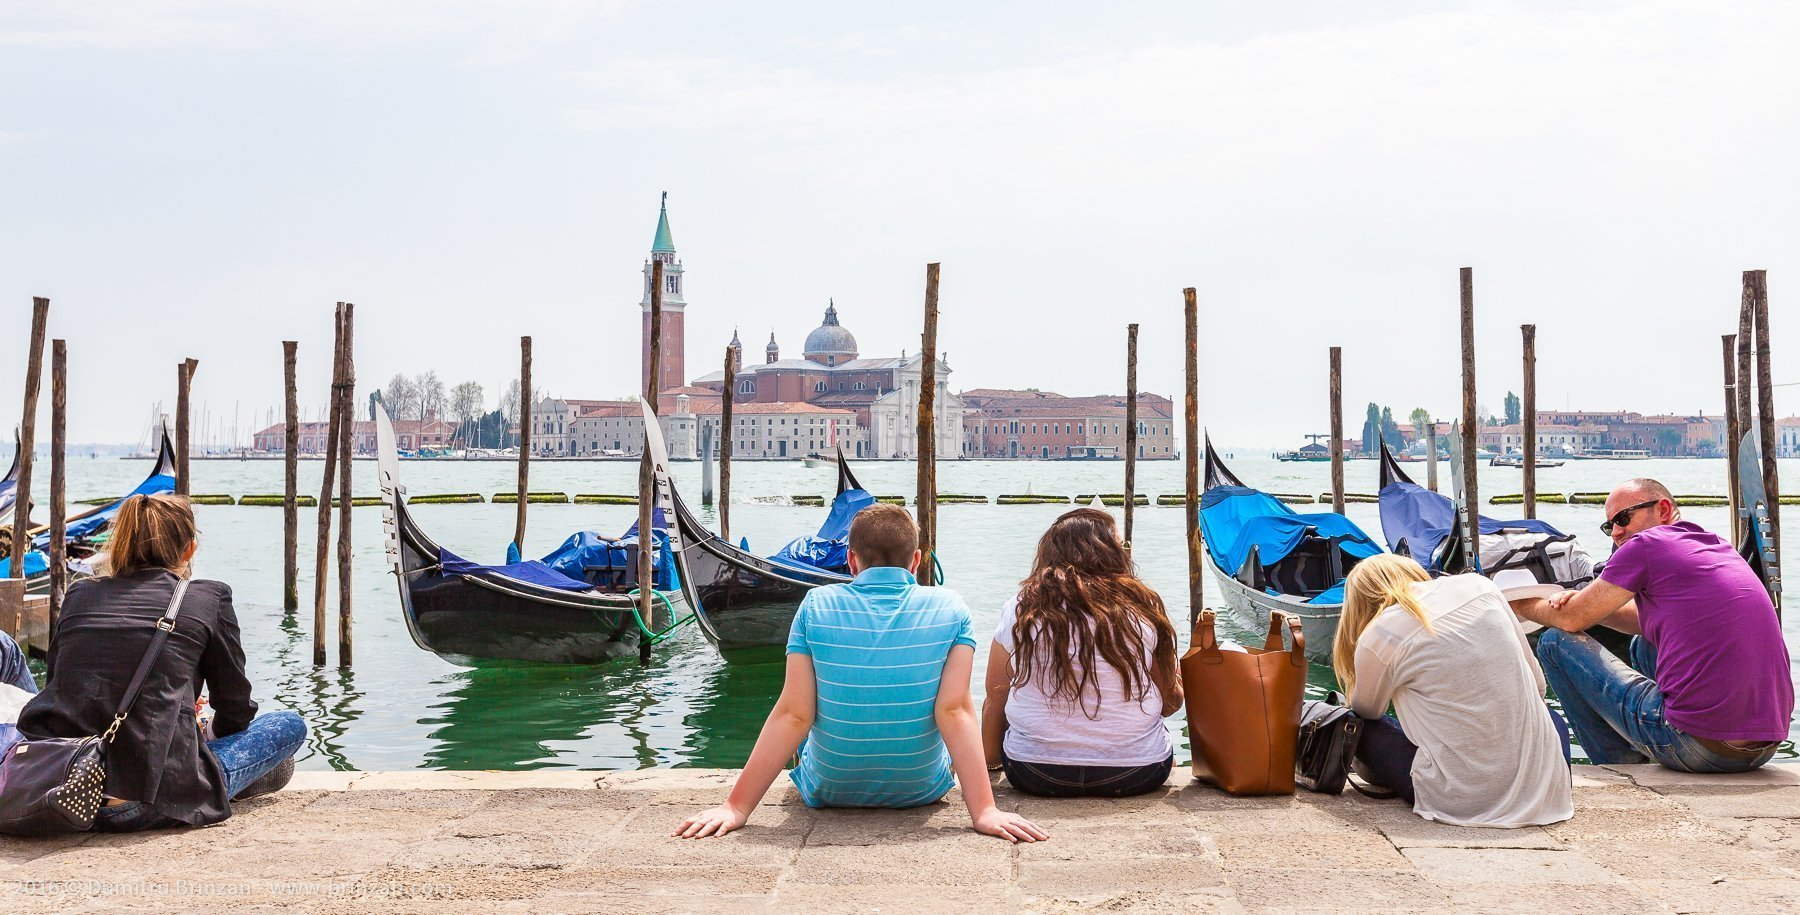 The air feels very hot in Venice, even if the temperatures are not high. The stones in the city absorb the sun's heat and becomes like a sauna. Always have bottled water with you.